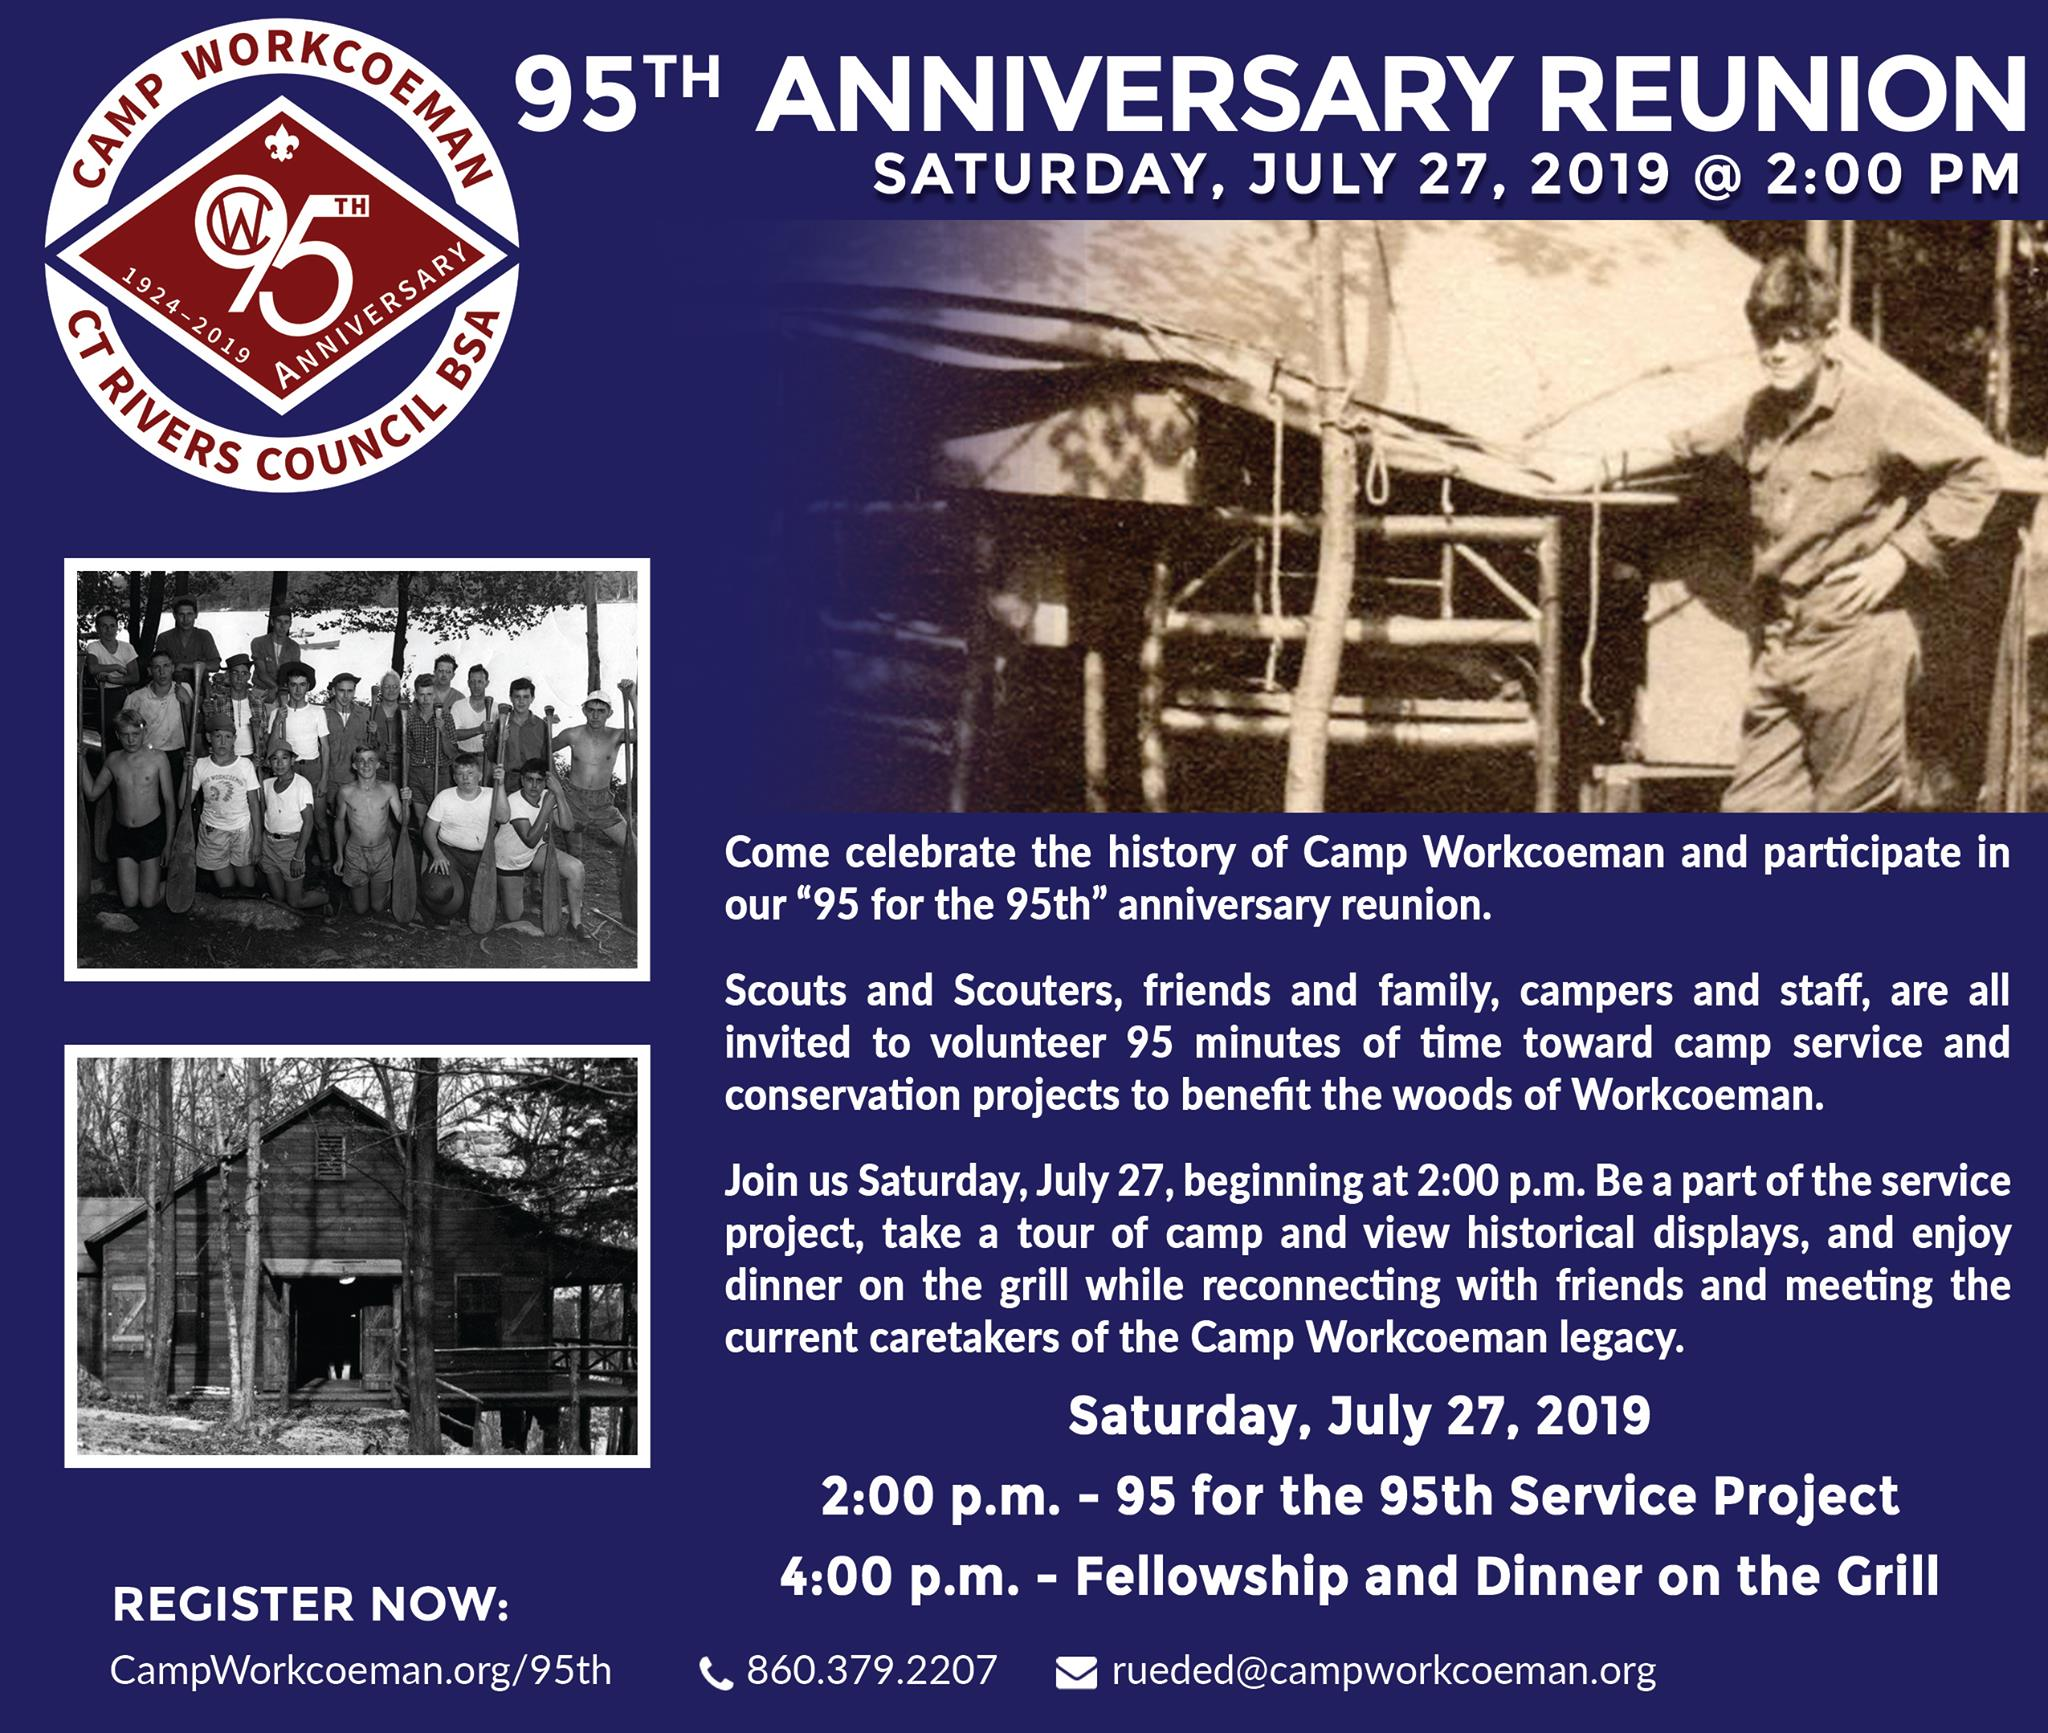 95th Anniversary Reunion Flier